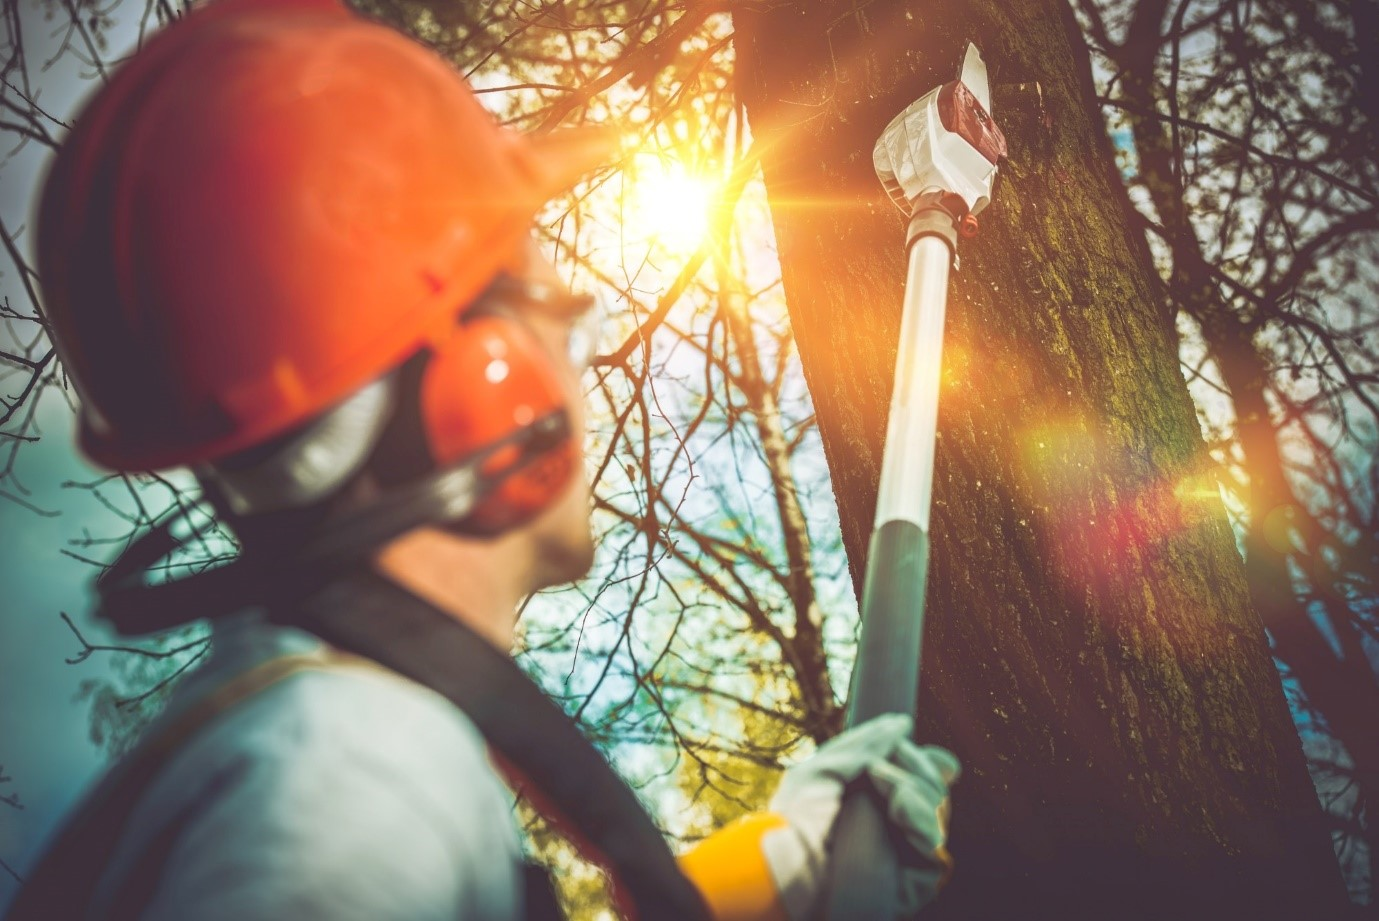 image - 5 Reasons to Look into a Tree Removal Service for Problematic Trees